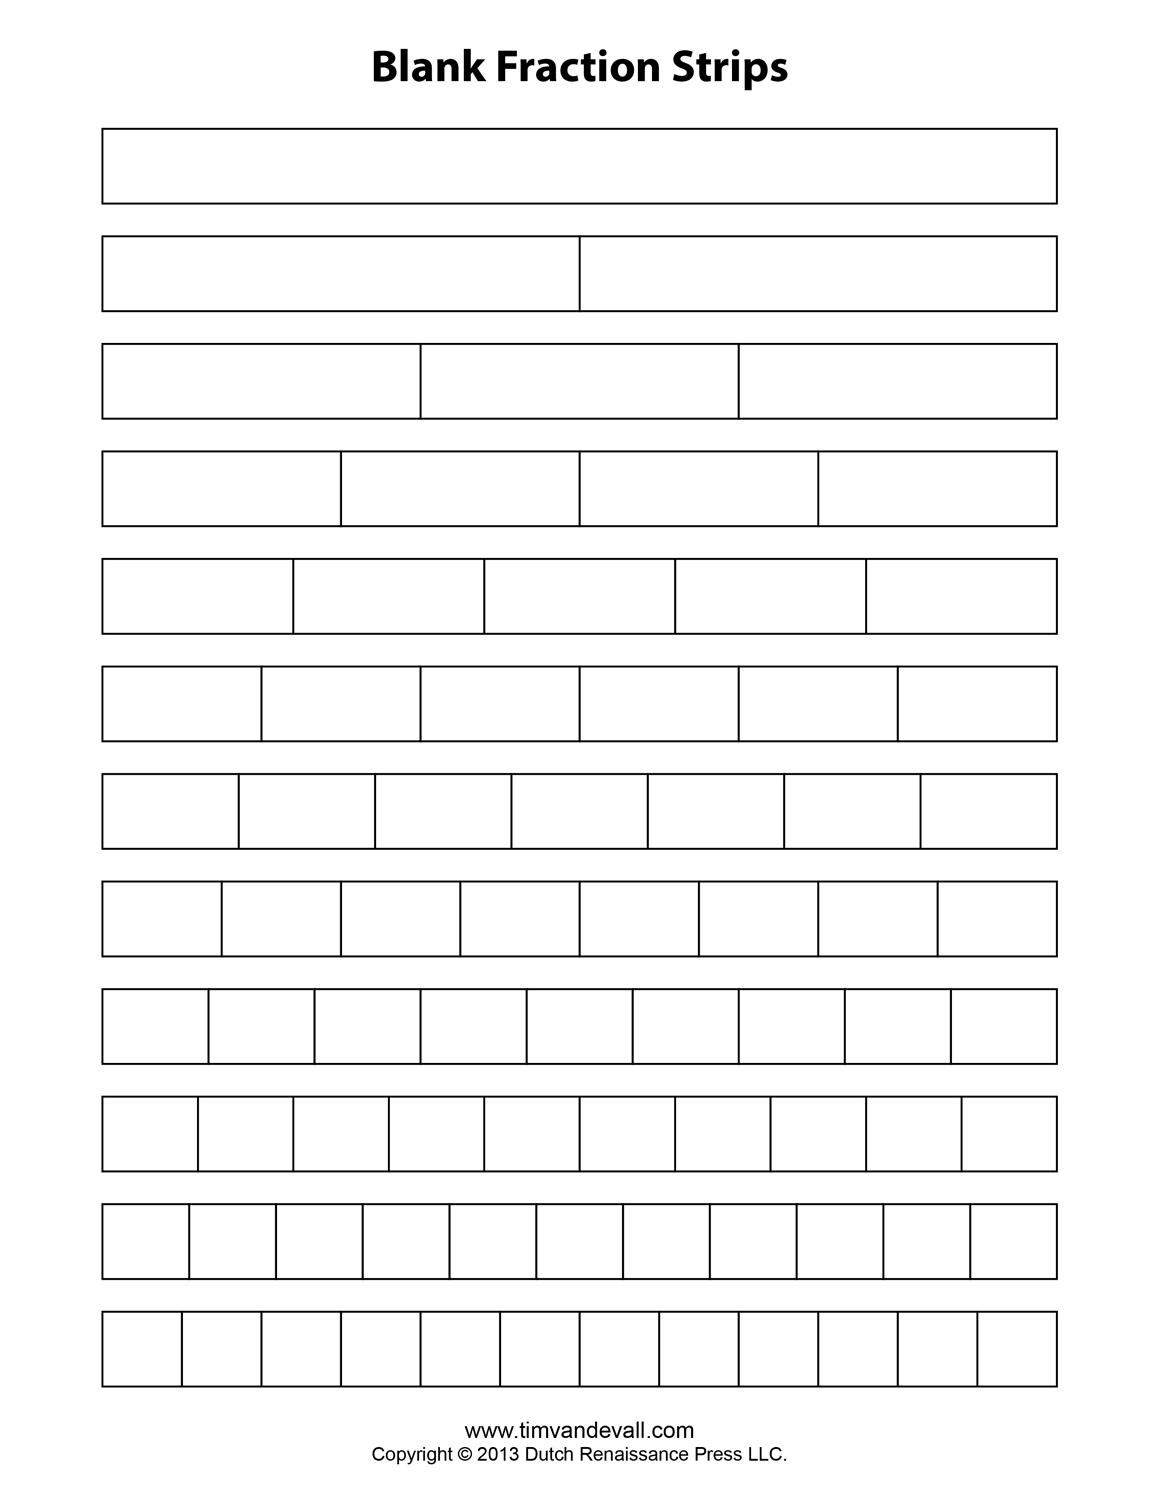 Fraction Strip Templates for Kids School Math Printables – Fraction Strip Worksheet